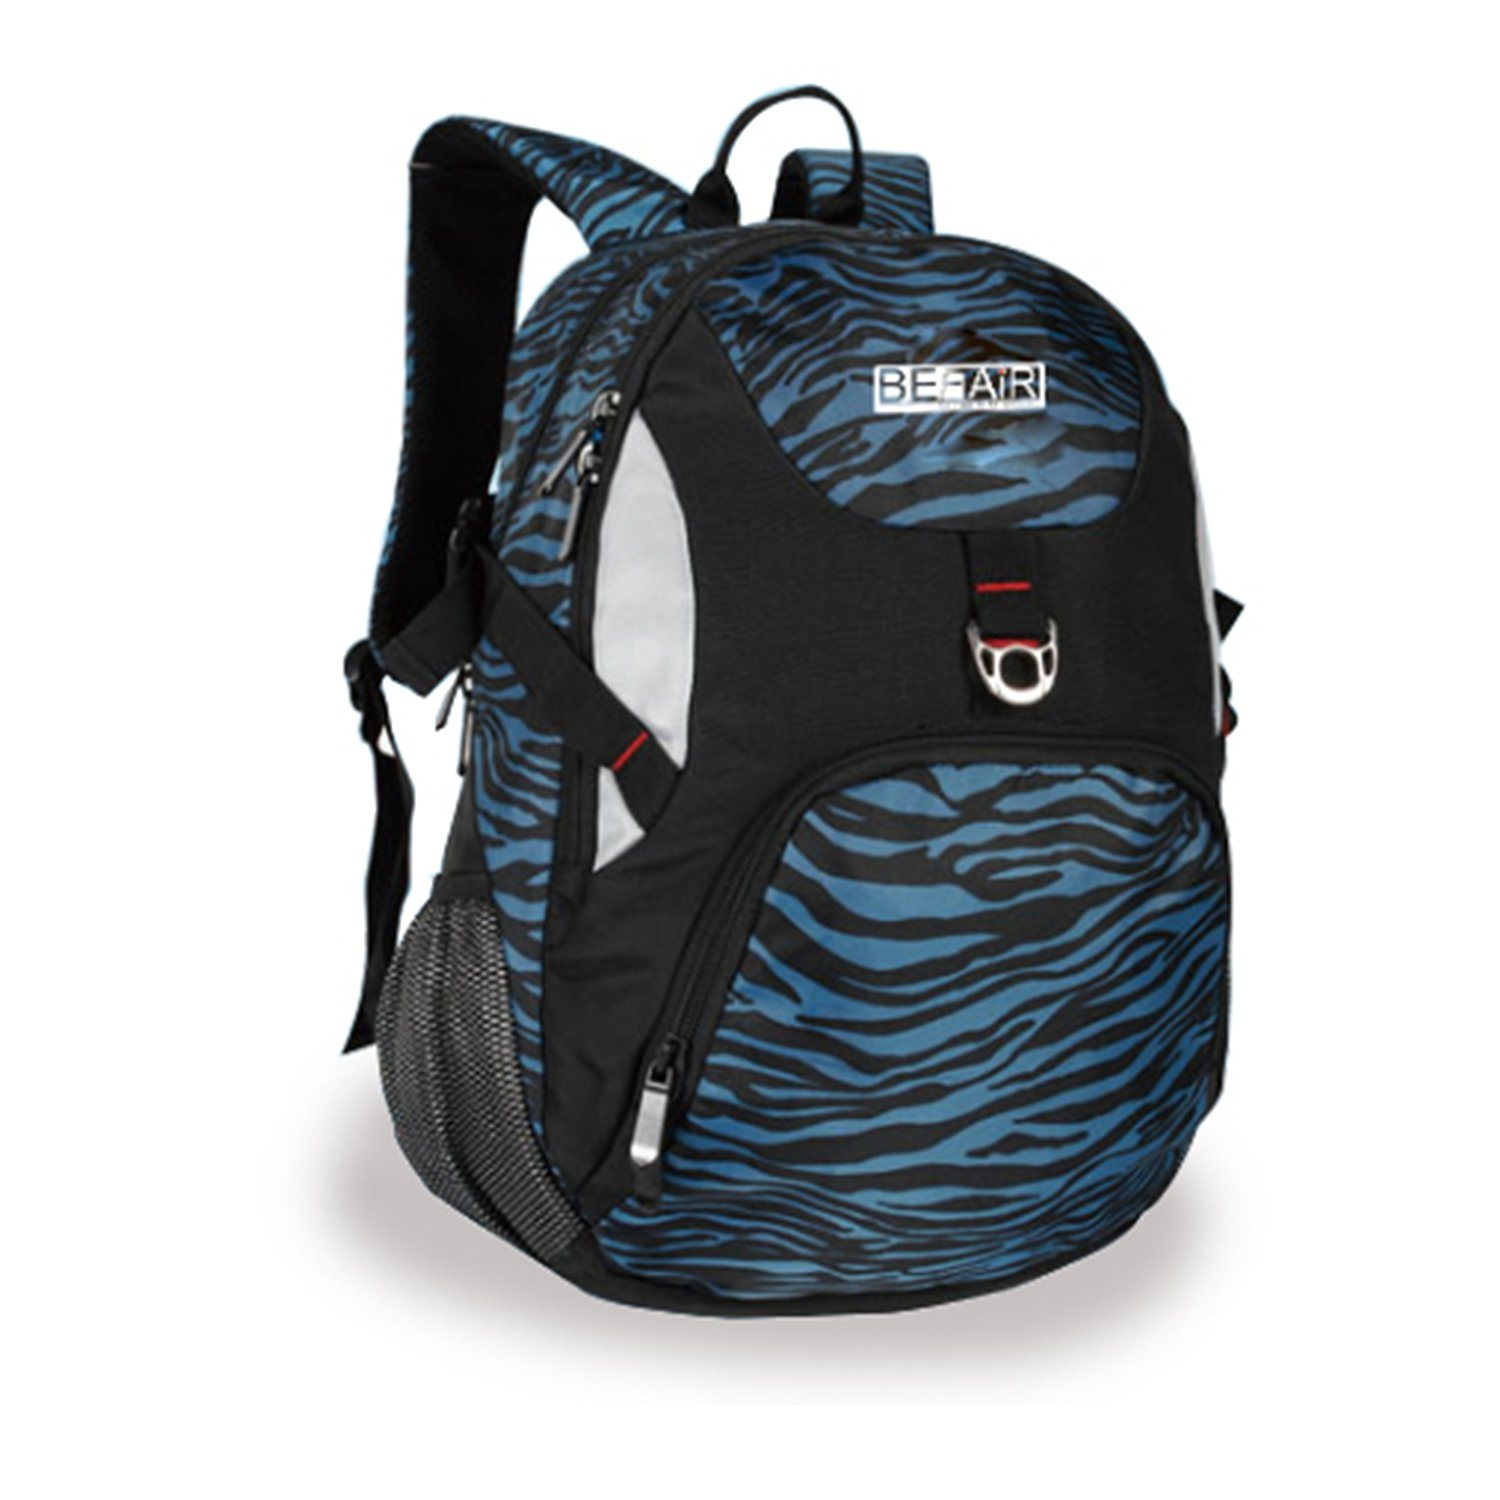 aed87d1ff87d China cool rucksack backpacks for men and boys china backpacks for guys  cool backpacks for women